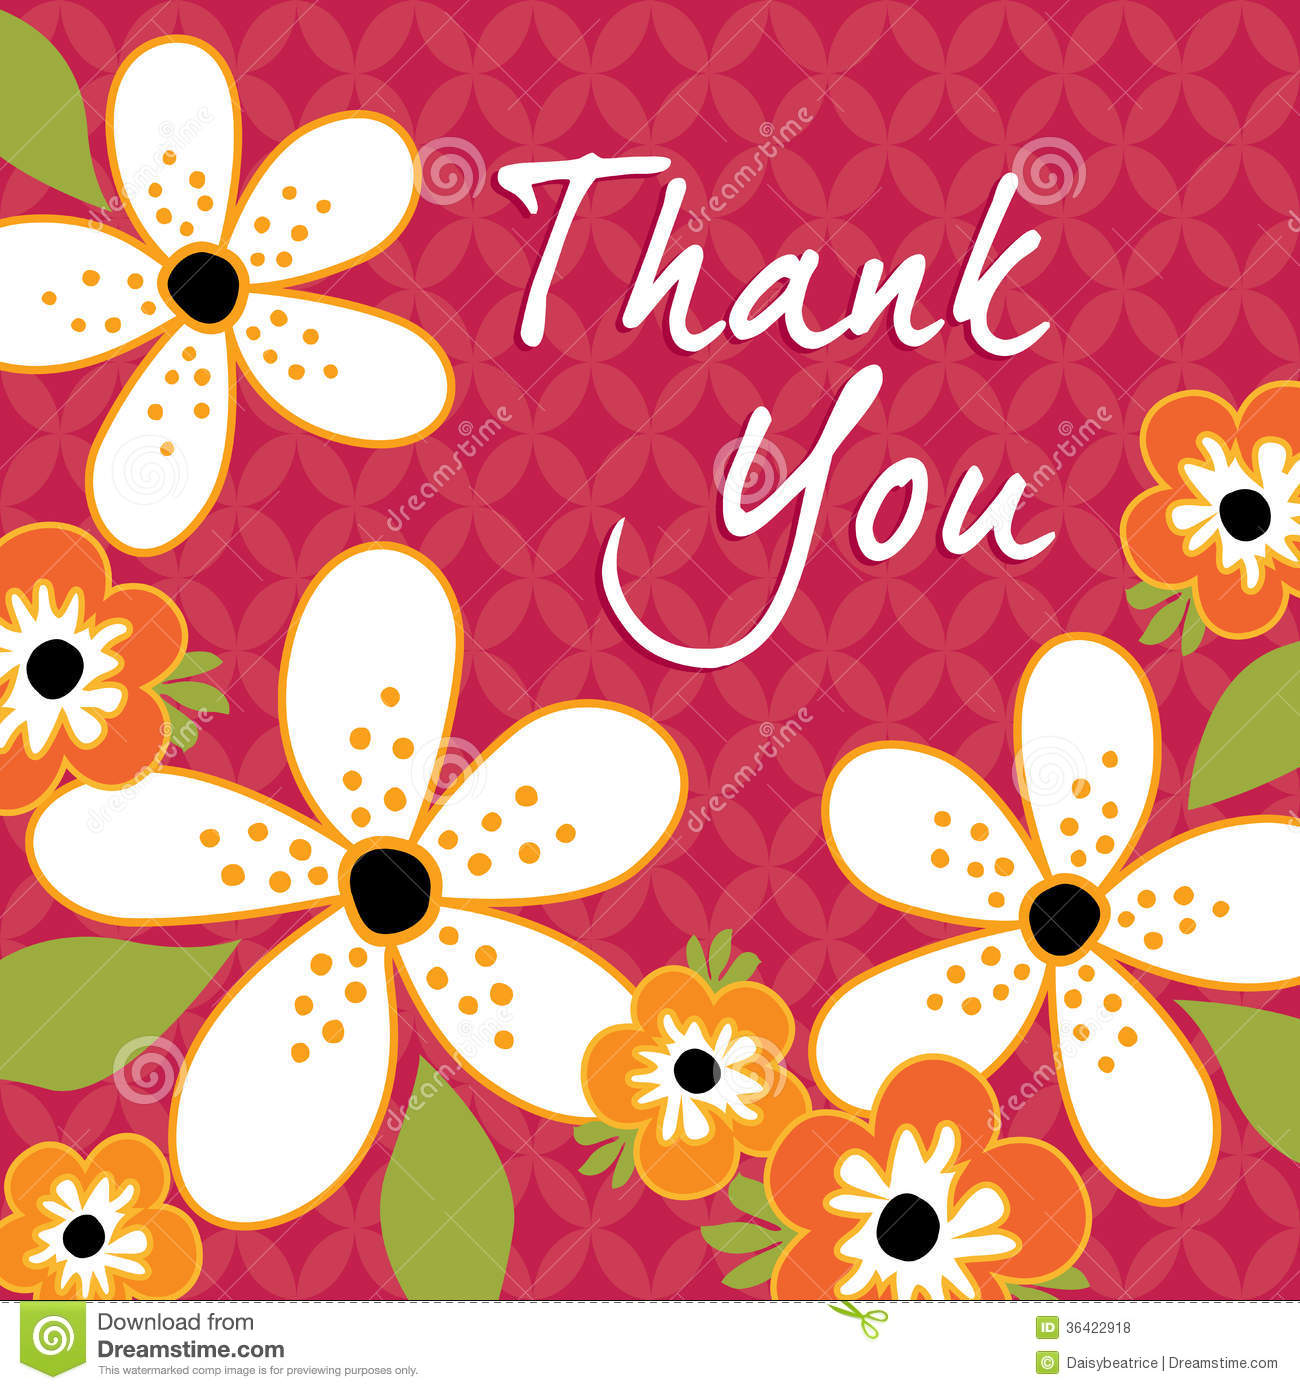 vintage floral thank you card template stock vector illustration of illustration dotted 36422918. Black Bedroom Furniture Sets. Home Design Ideas